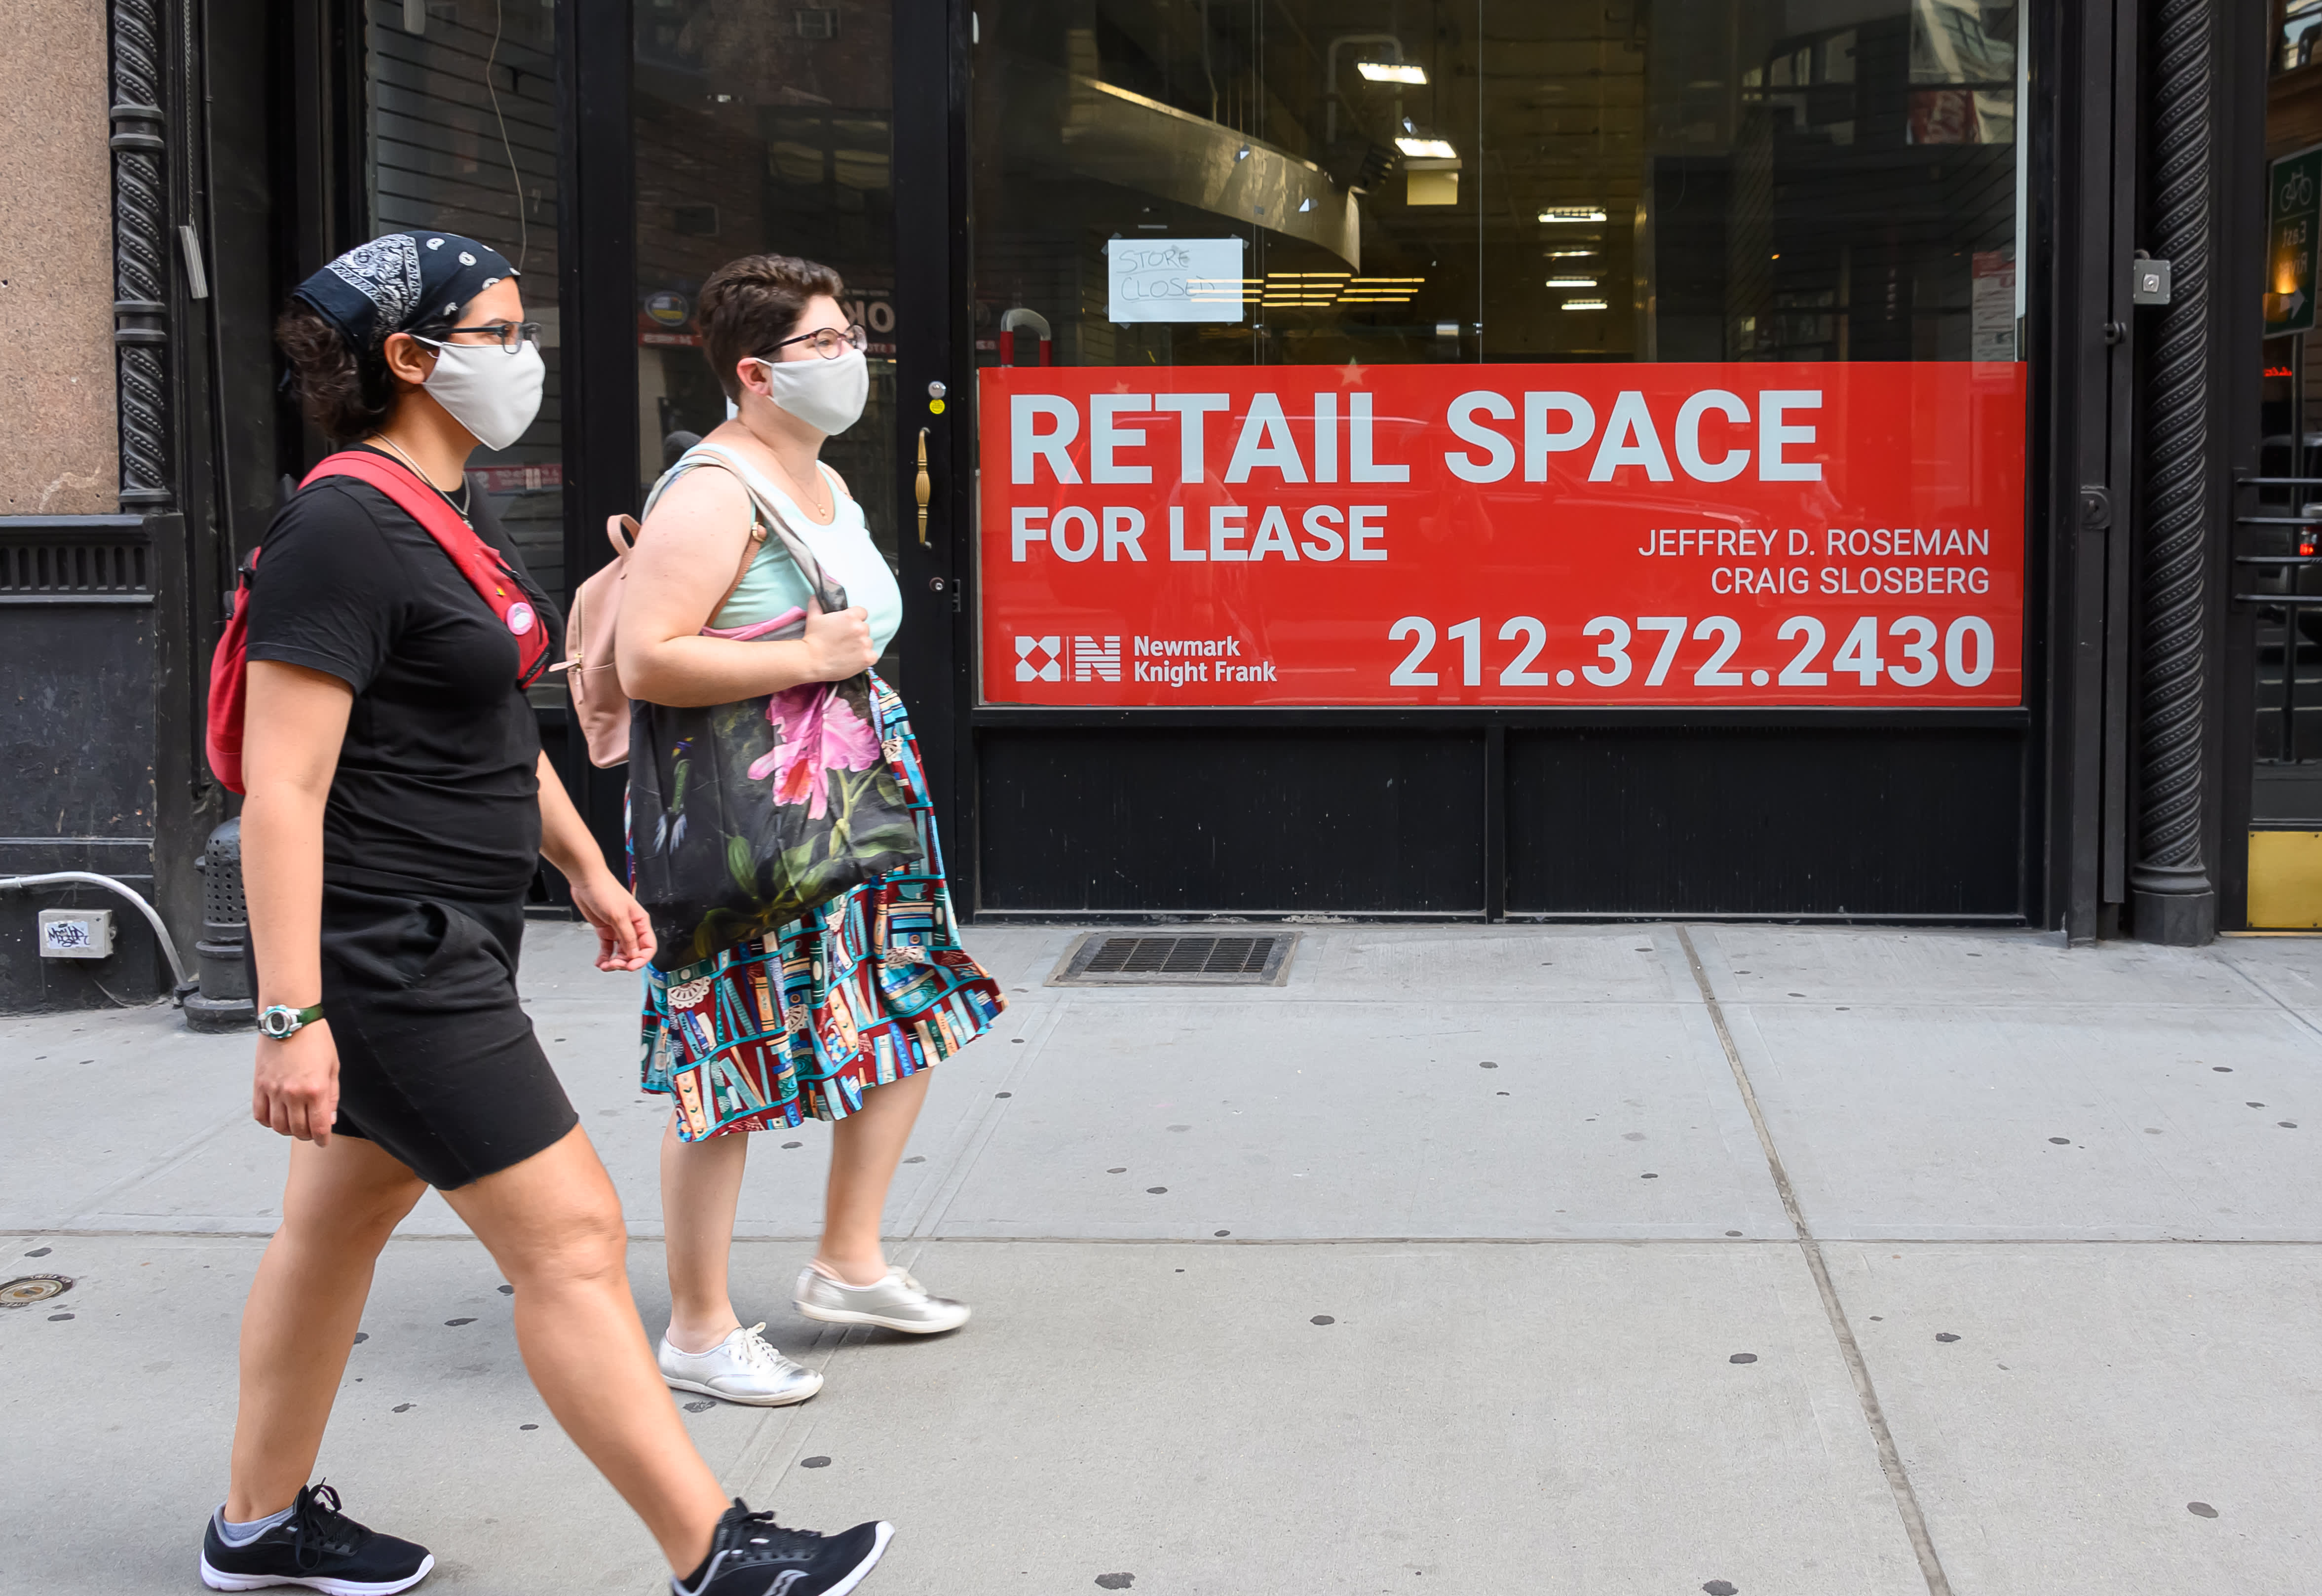 New York Metropolis might flip vacant retail house into Covid testing websites, says actual property mogul